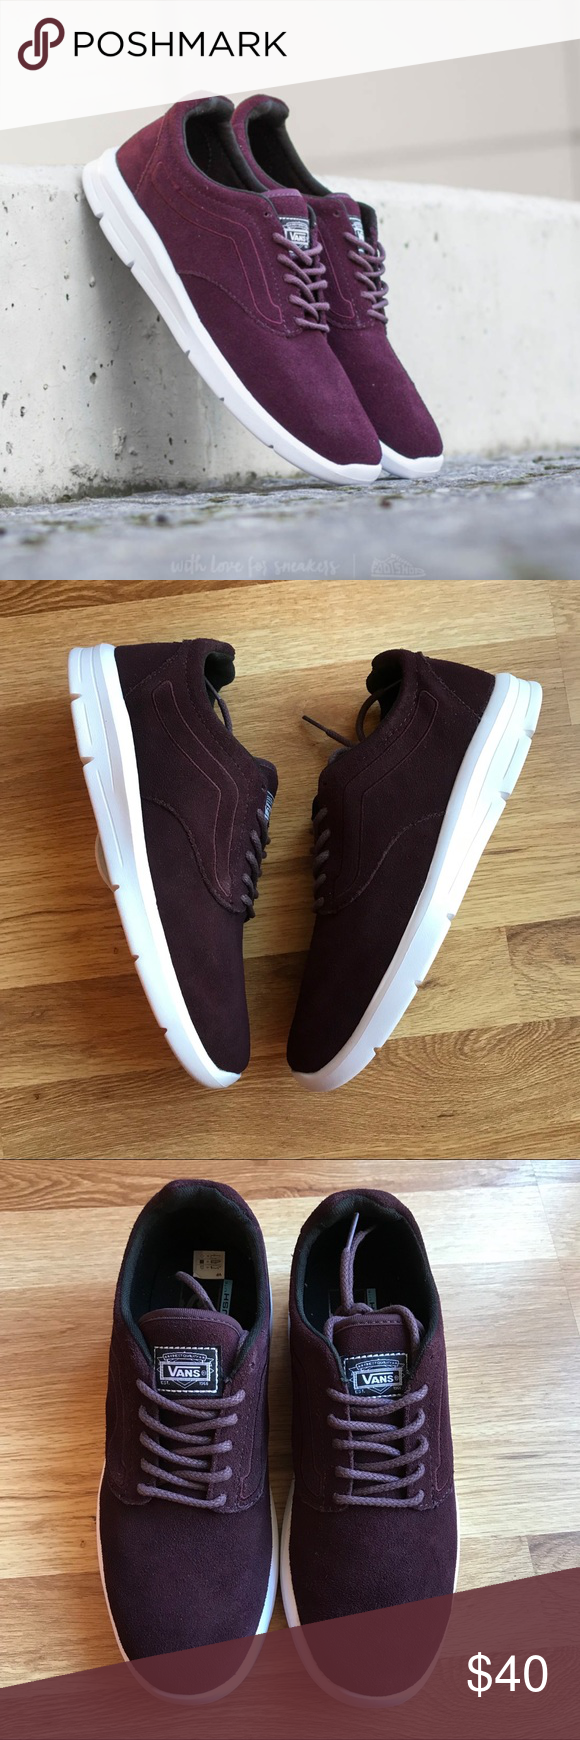 ab06db717533f3 Vans ISO Suede Iron Brown Sneakers Sz 9 Men s 7.5 or Women s 9 New in box  Smoke free and pet free home. Vans Shoes Sneakers